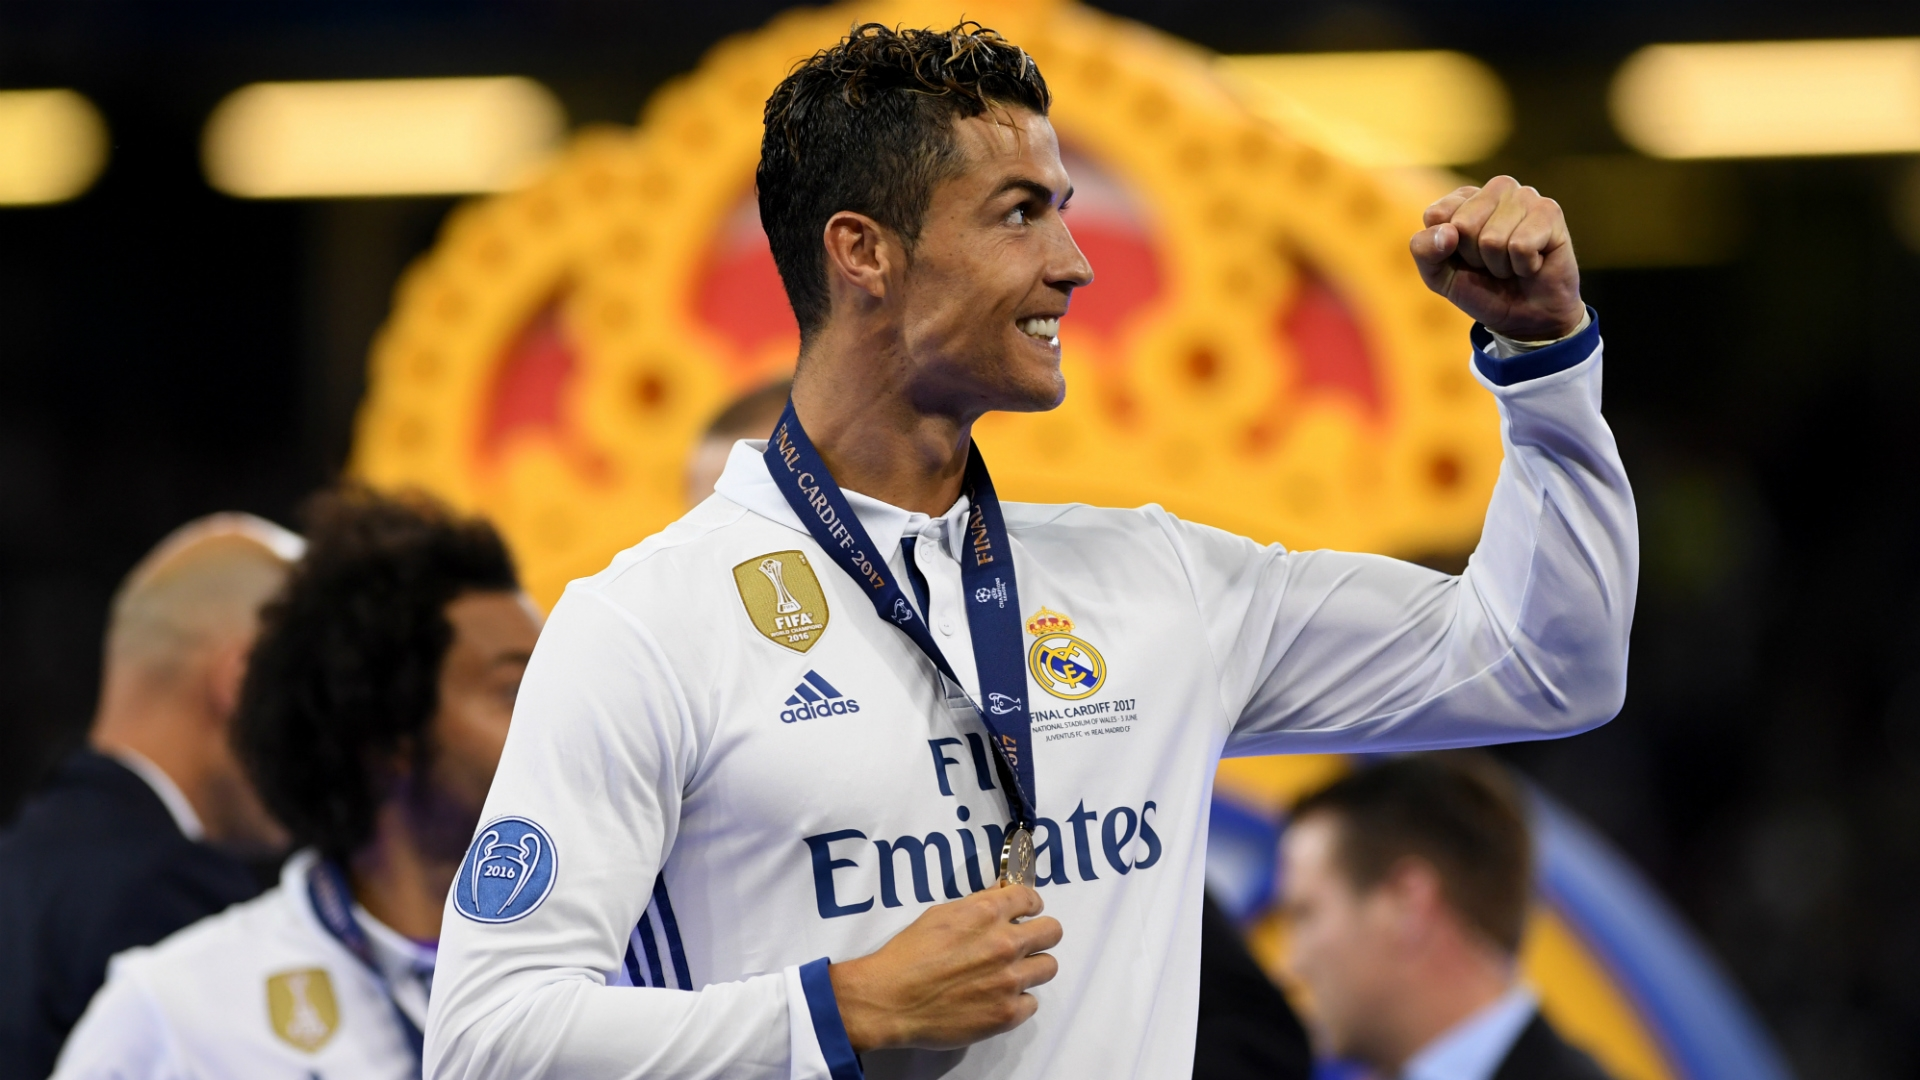 In the complaint, it is argued that Ronaldo's representatives created a new business structure with the purpose to conceal the earnings made from image rights during 2011 to 2014.